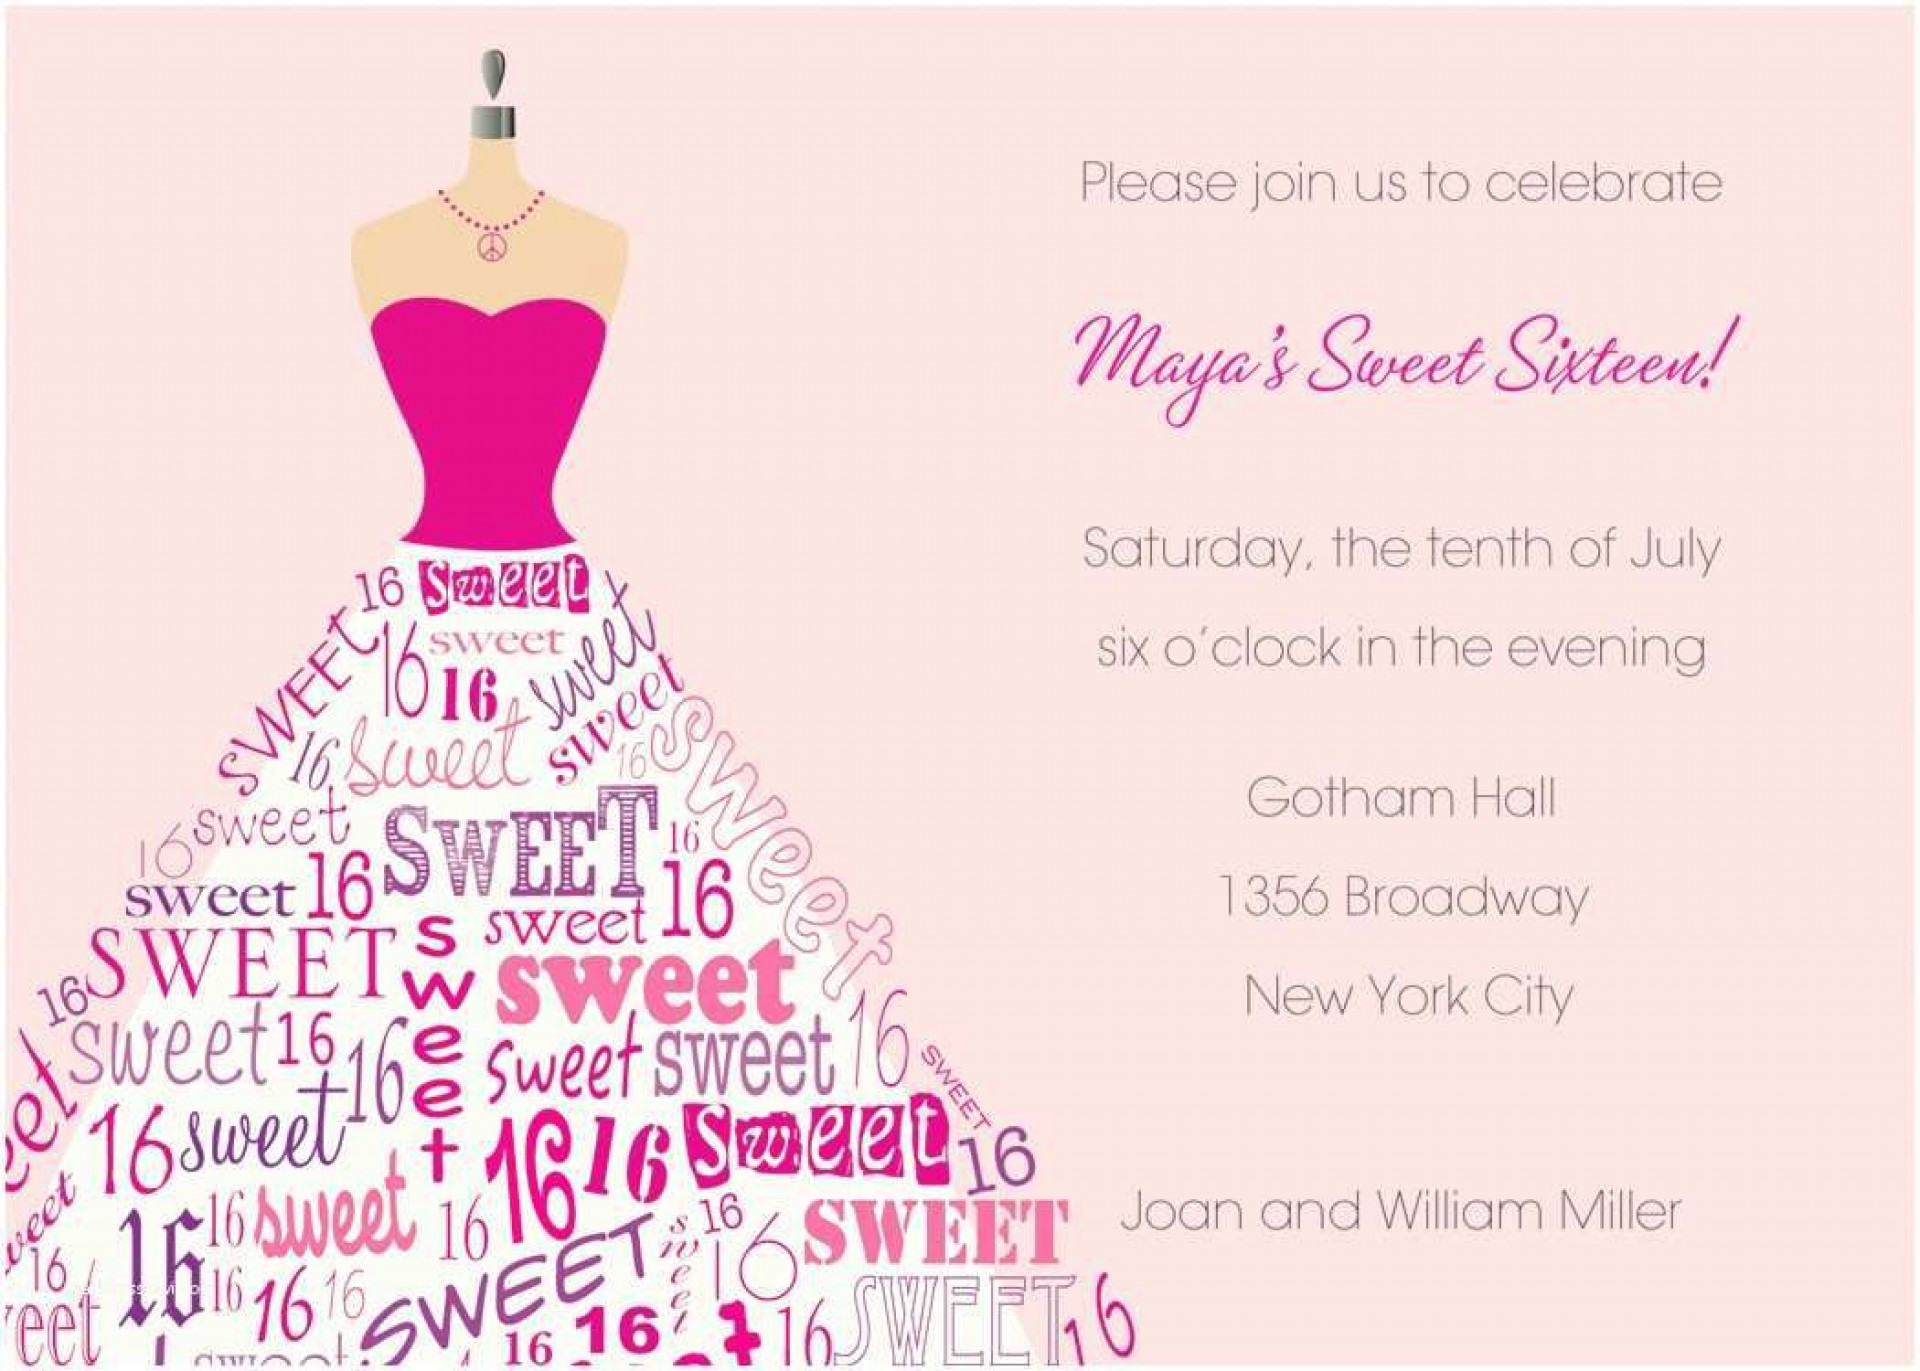 002 Shocking Sweet 16 Invite Template High Definition  Templates Surprise Party Invitation Birthday Free 16th1920